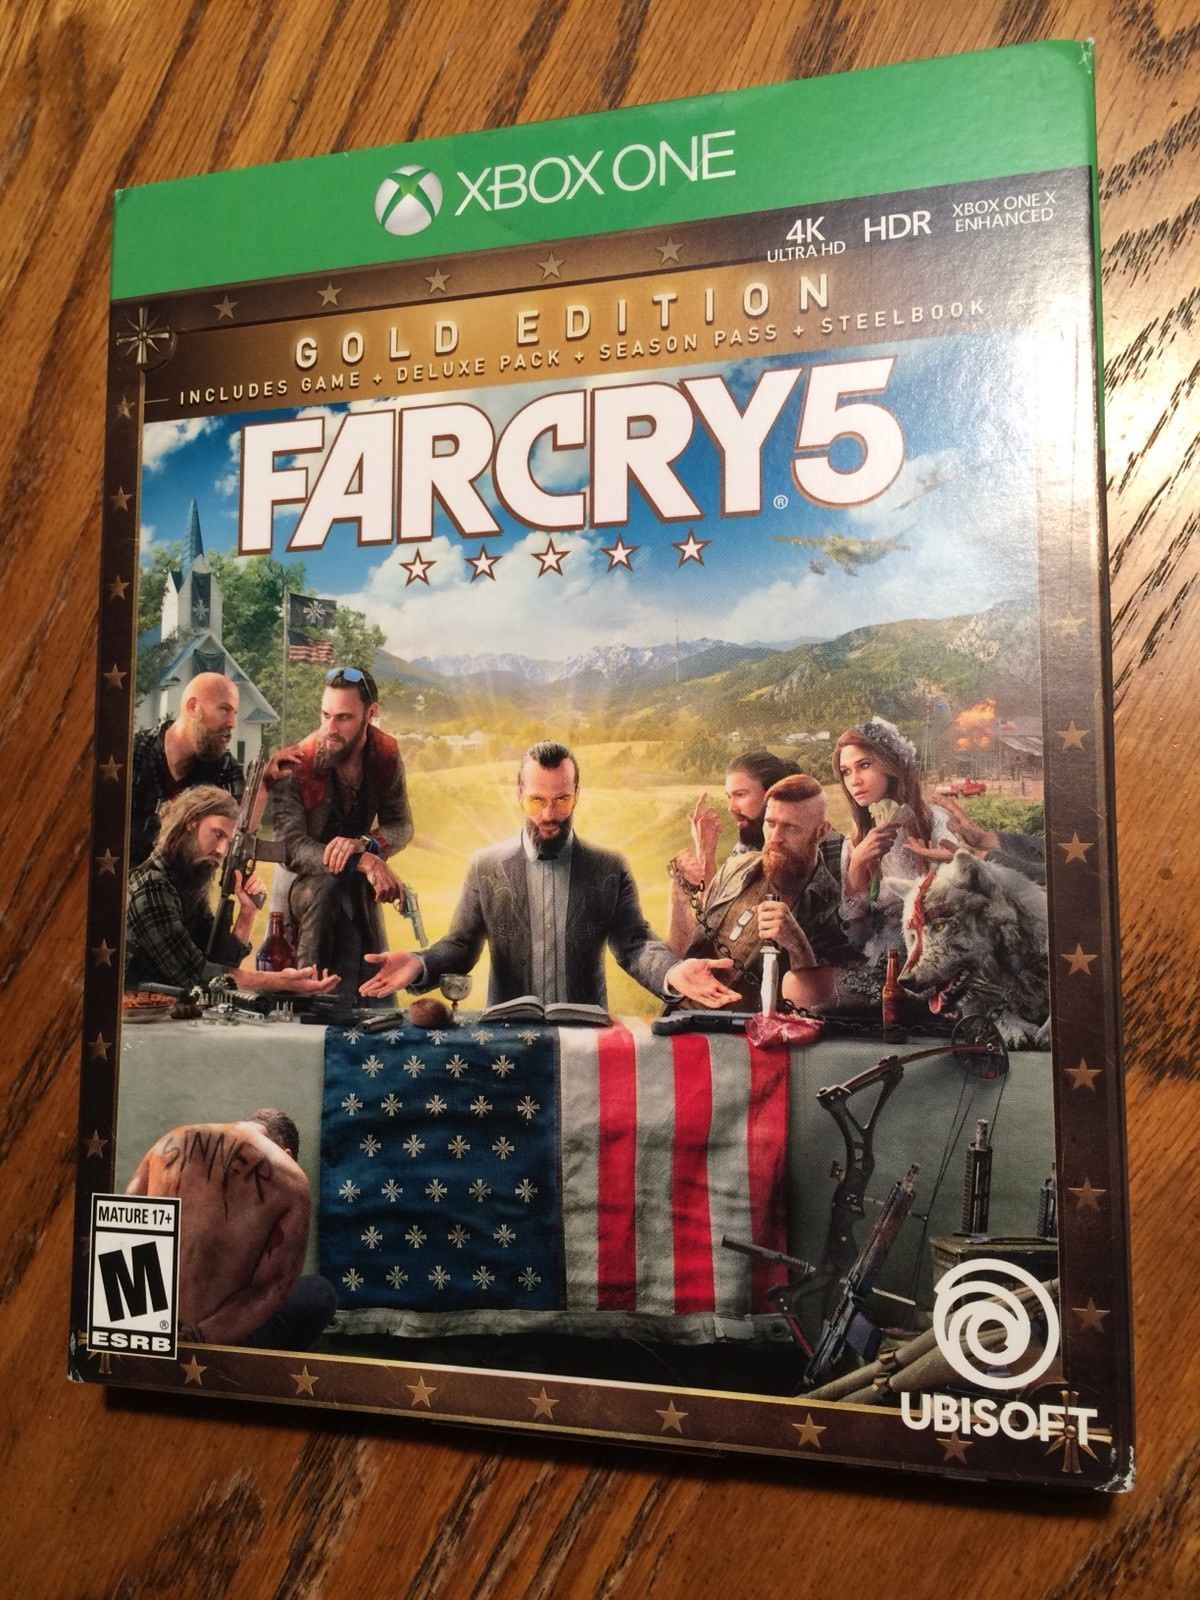 Far Cry 5 Steelbook Xbox One Gold Edition New In Hand Ships Fast 94 98 End Date Thursday Apr 26 2018 21 35 07 Pdt Buy It Now Fo Xbox Xbox One Far Cry 5